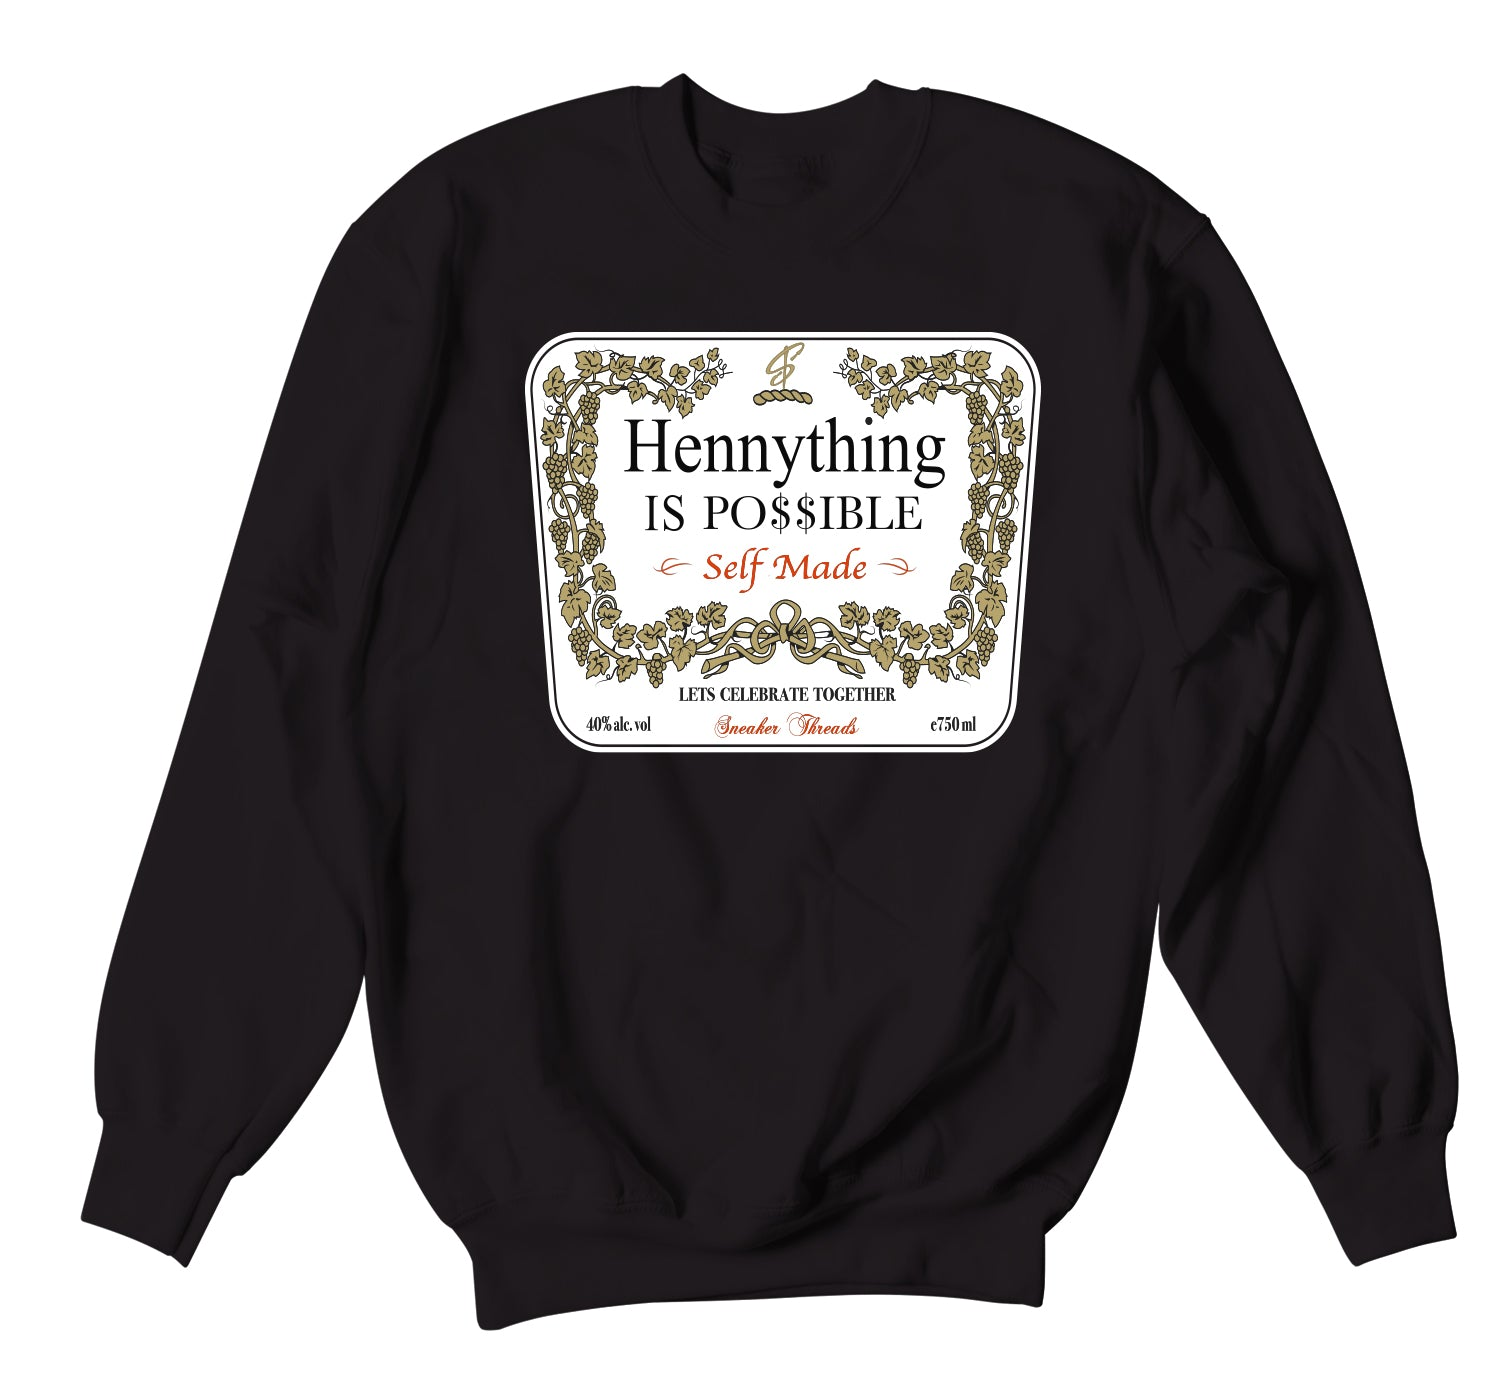 Air Max Duck Camo Sweater - Hennything - Black